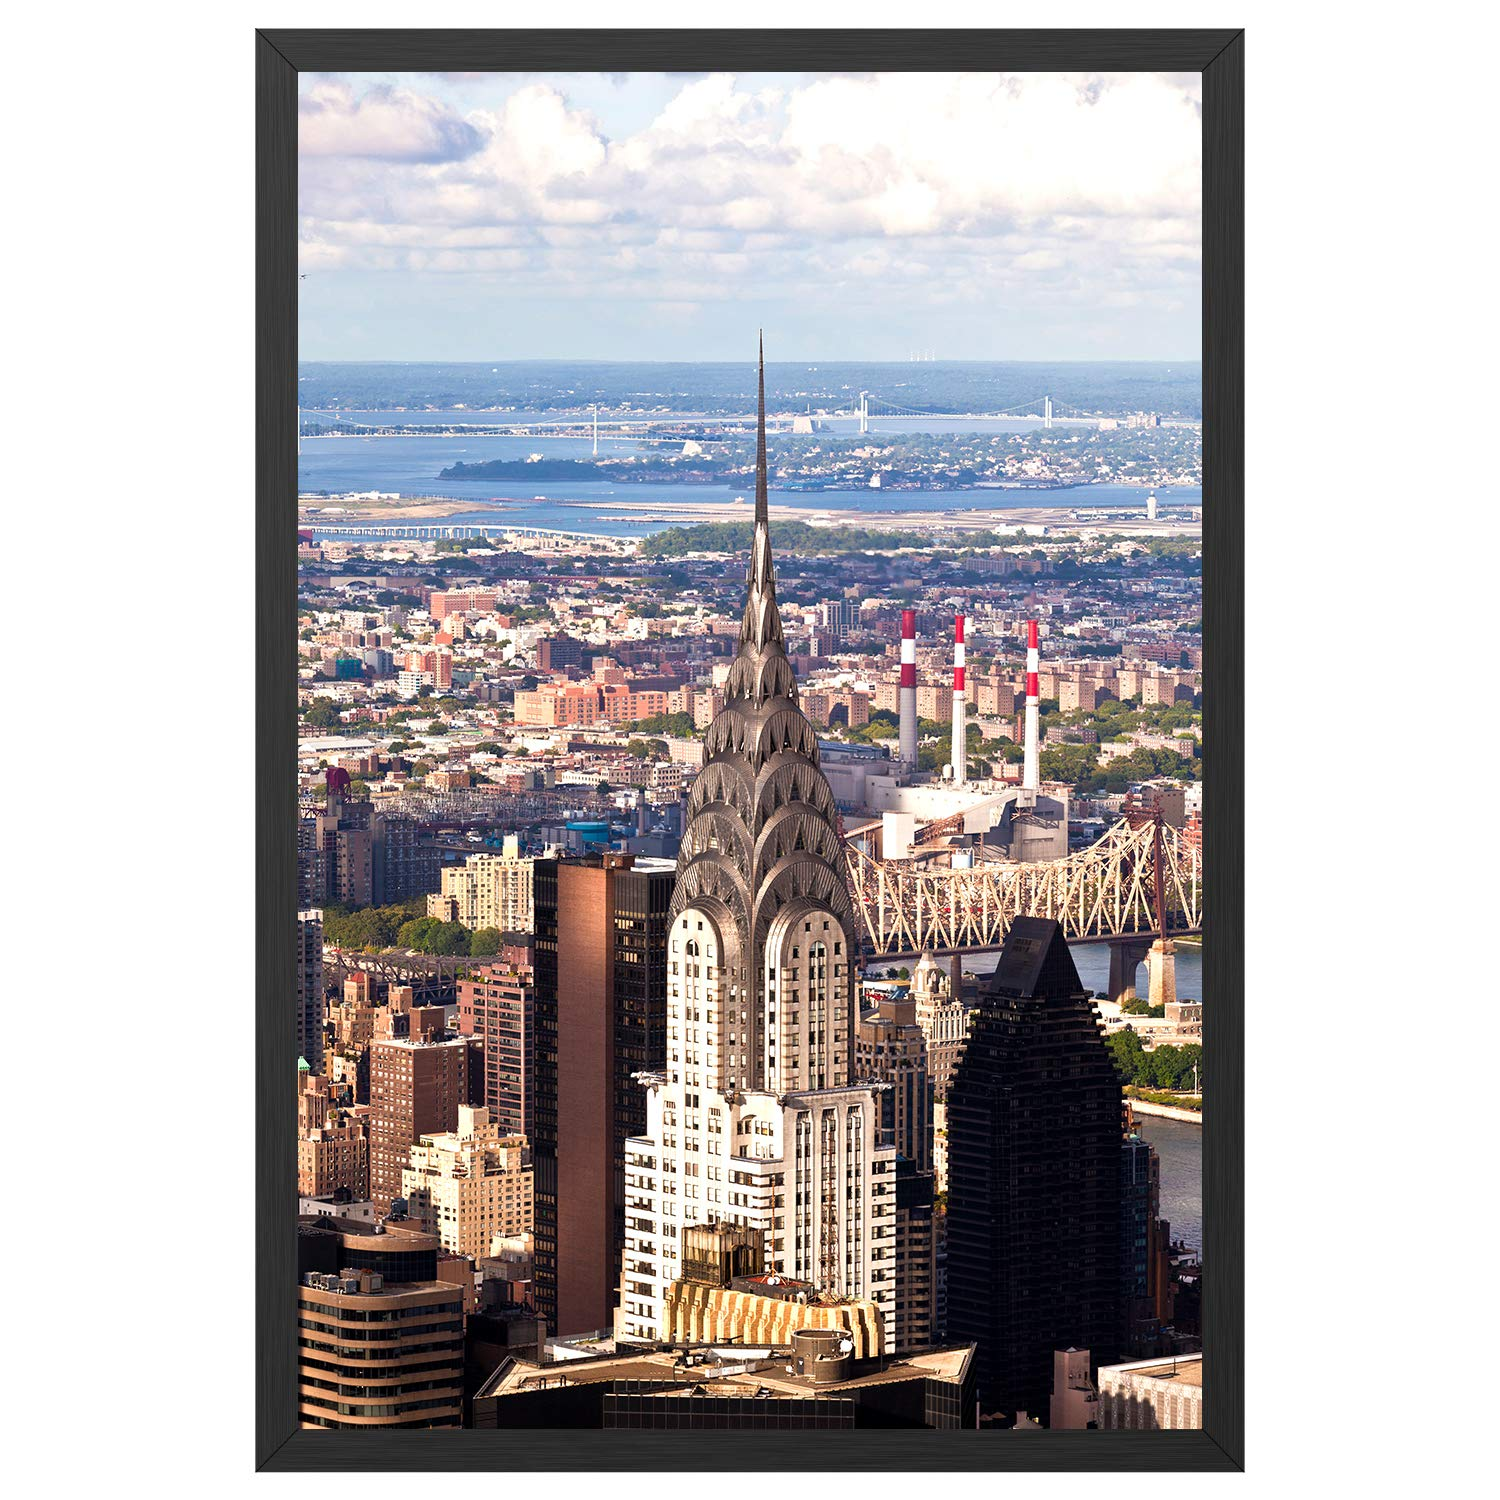 ONE WALL 24x36 Inch Poster Frame, Black Aluminum Movie Poster Frame for Photo Picture Poster Artwork Wall Hanging - Wall Mounting Hardware Included by ONE WALL